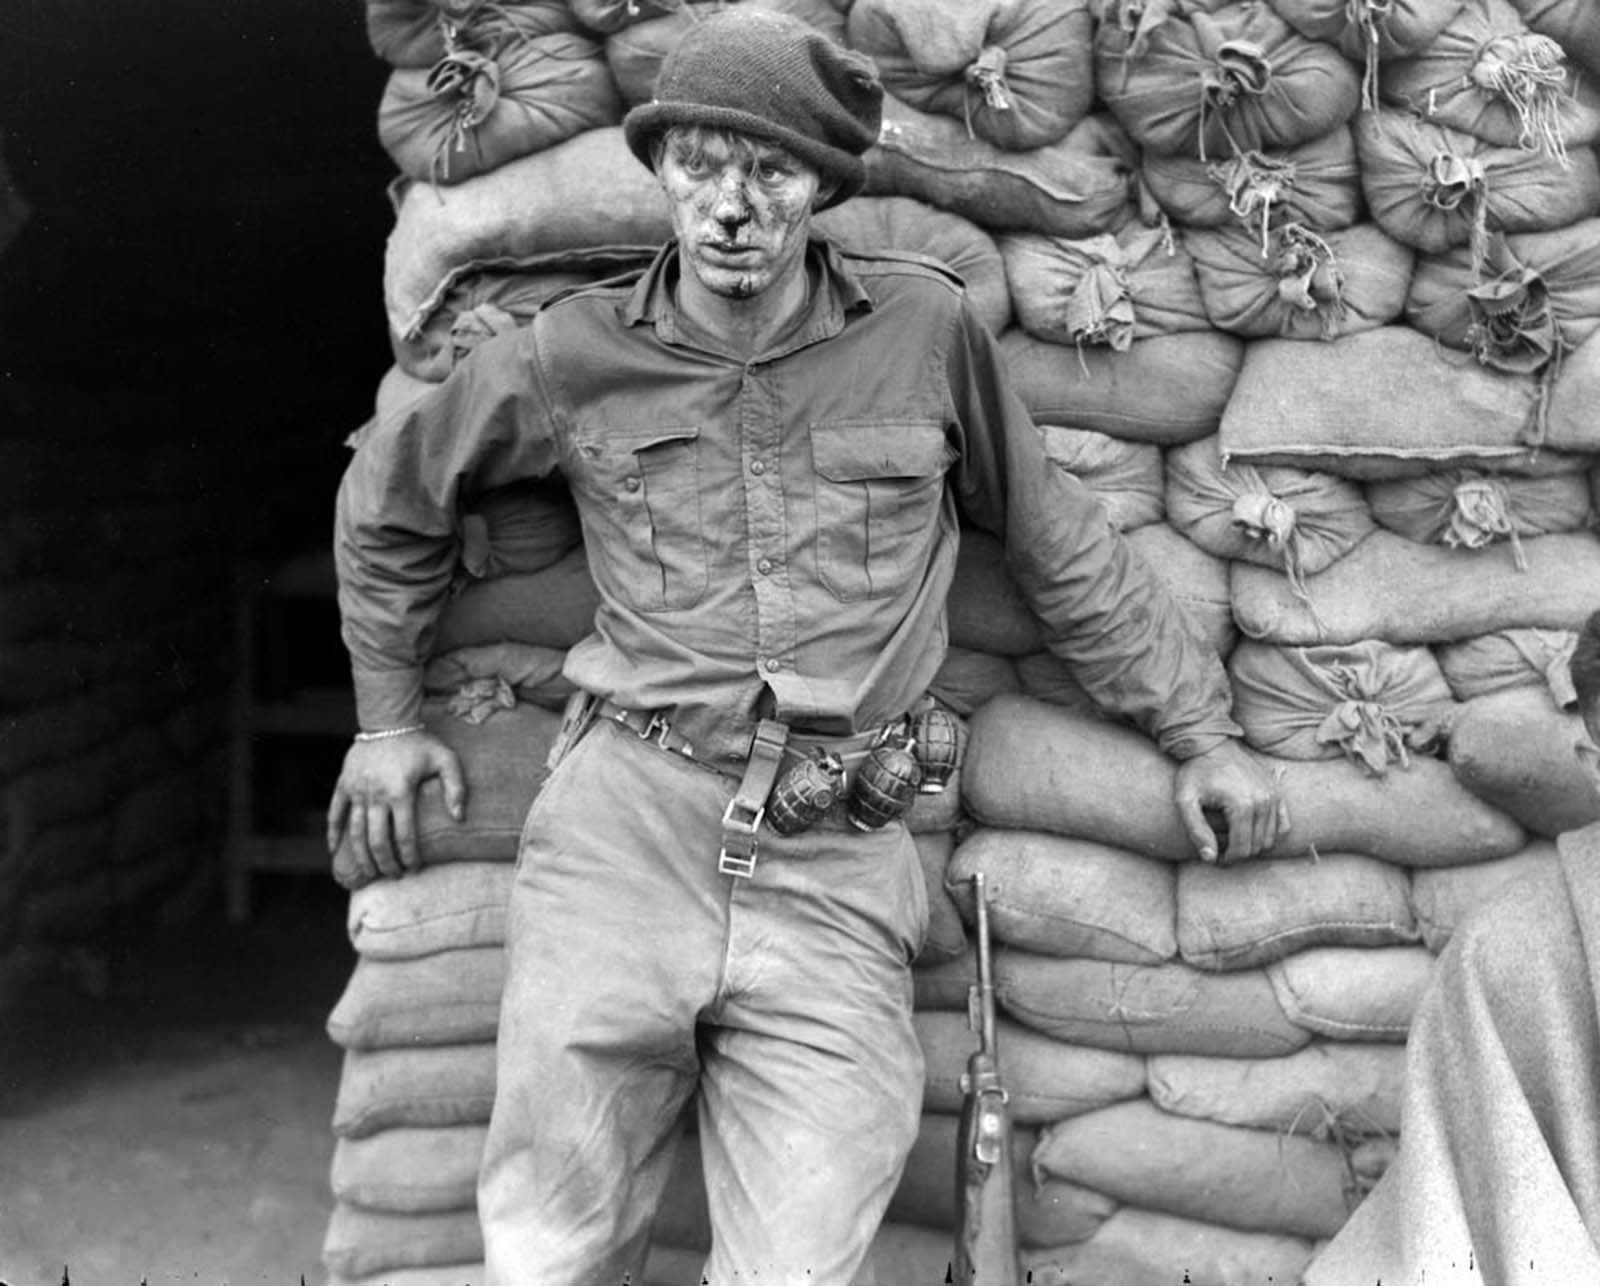 Private Heath Matthews (aged 20) of 'C' Company, 1st Battalion, Royal Canadian Regiment, awaits medical aid after a night patrol near Hill 166. Note the three No. 36 M Mk. I hand grenades on his belt and the late model US M1 carbine with bayonet lug.